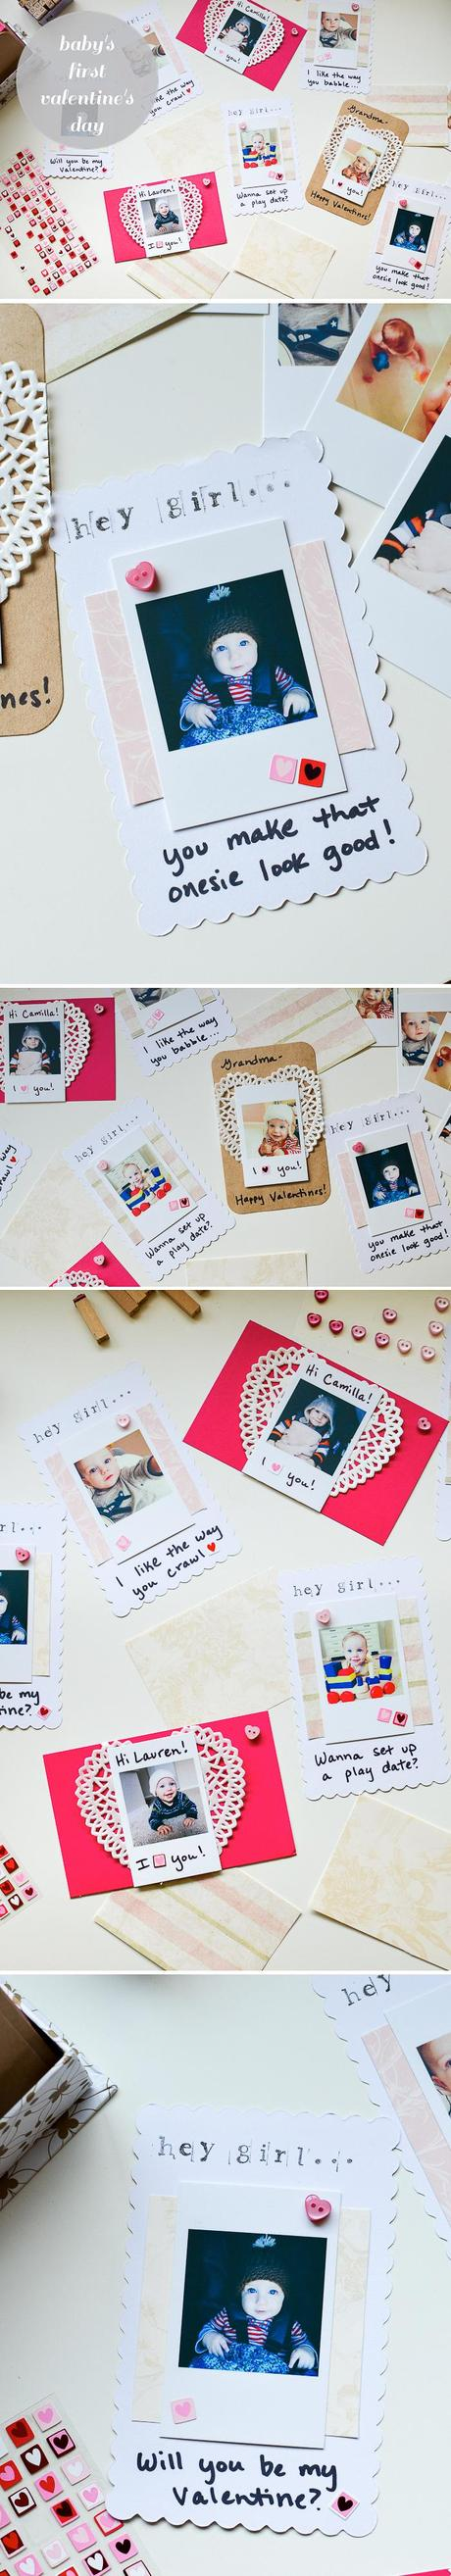 Homemade Valentines | Where My Heart Resides-1